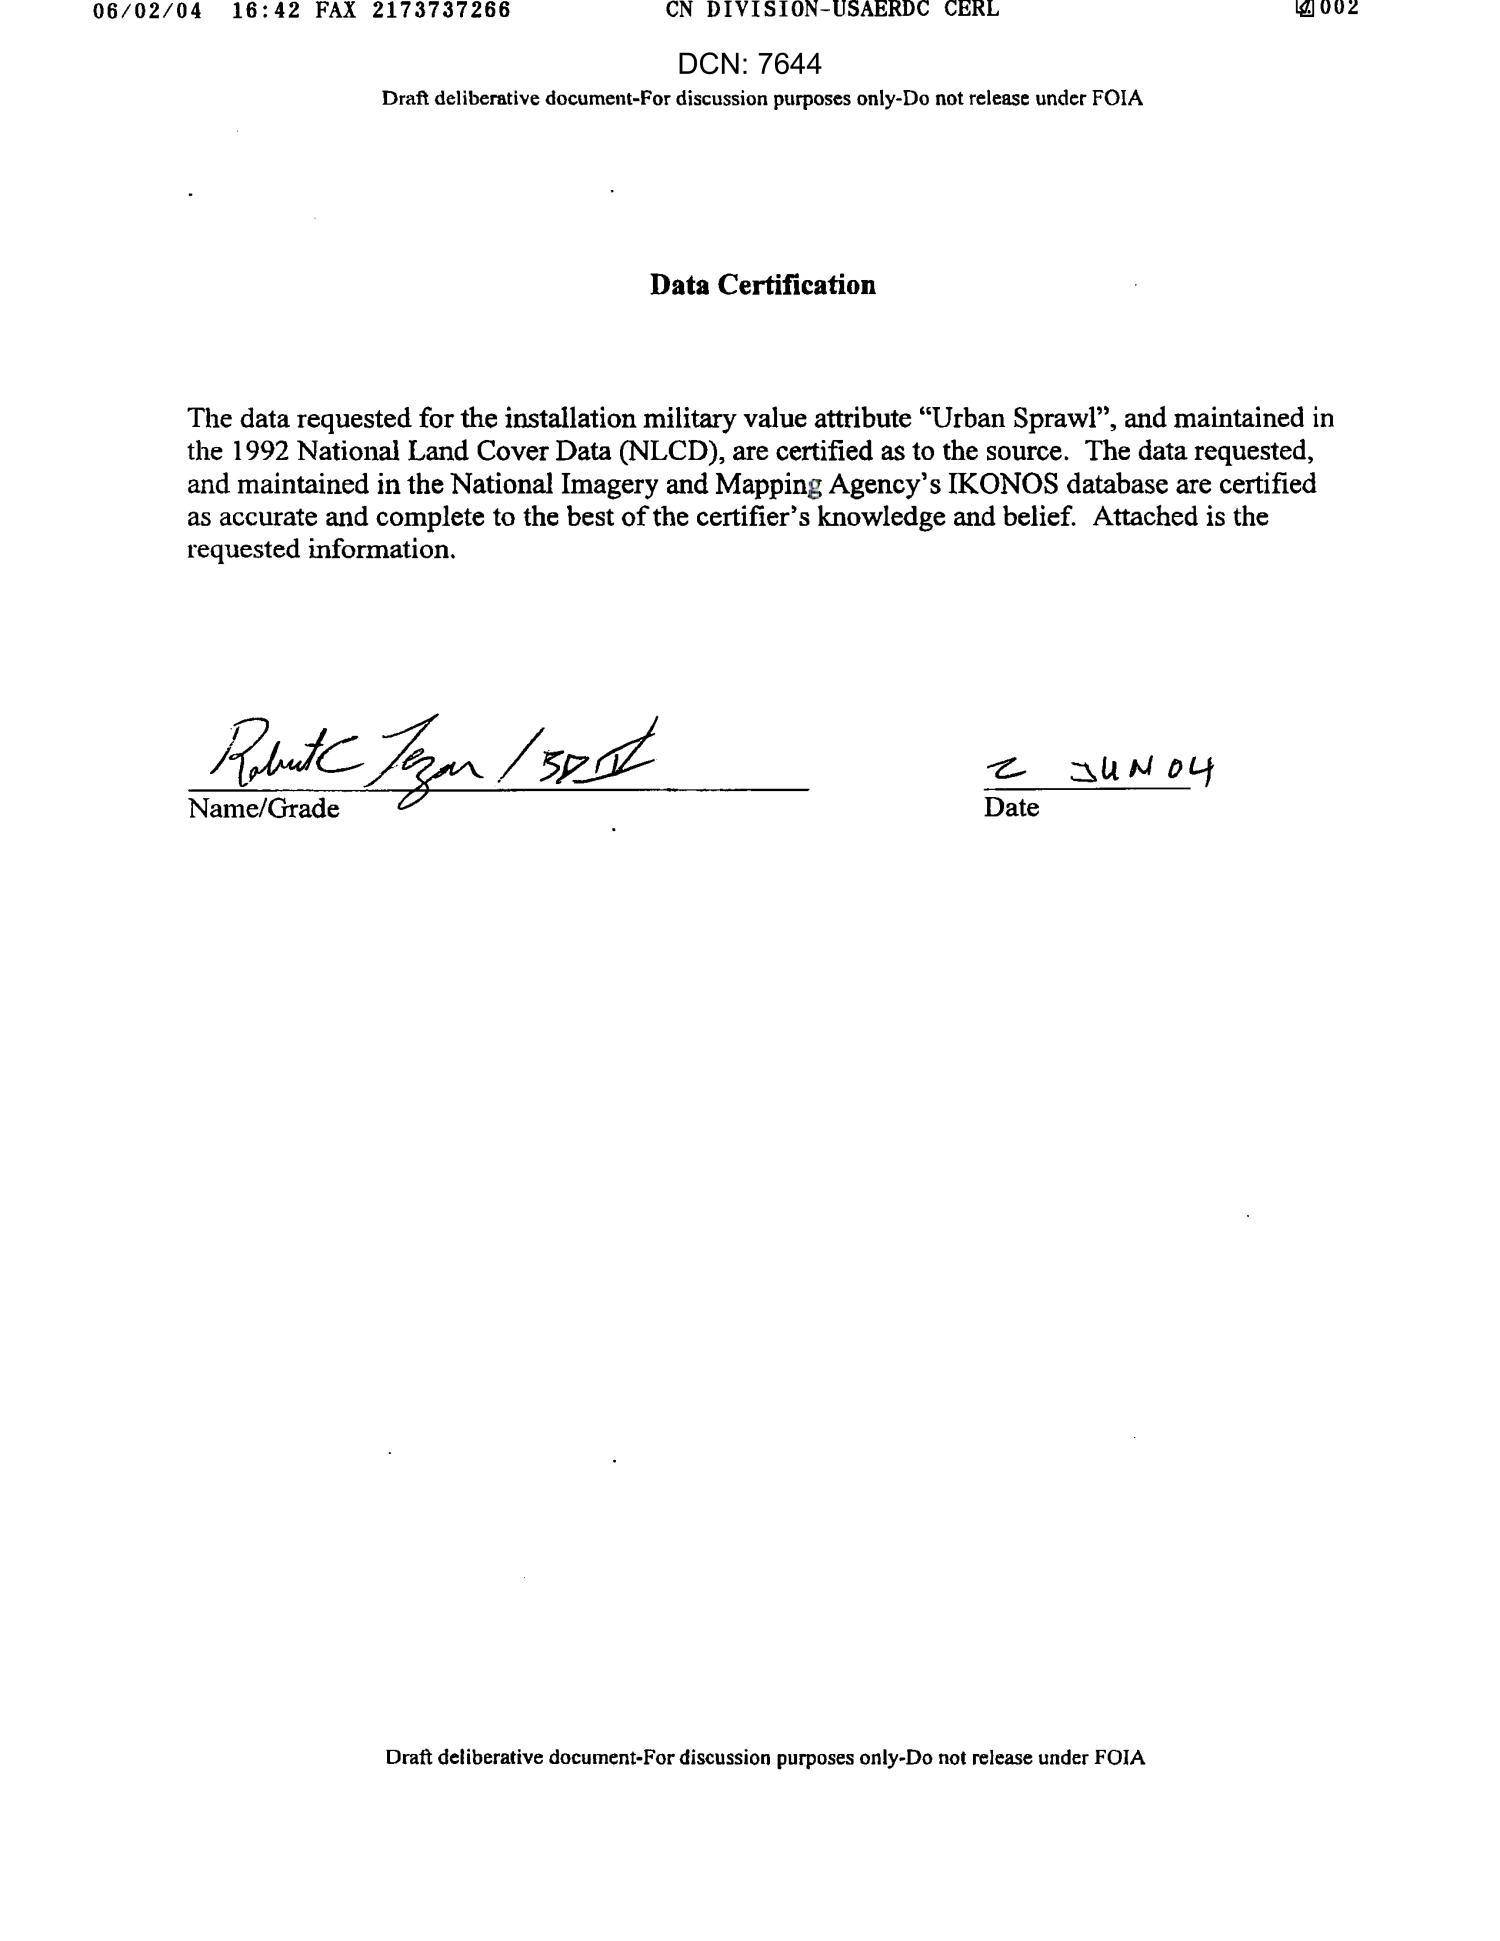 Data Certification Letter